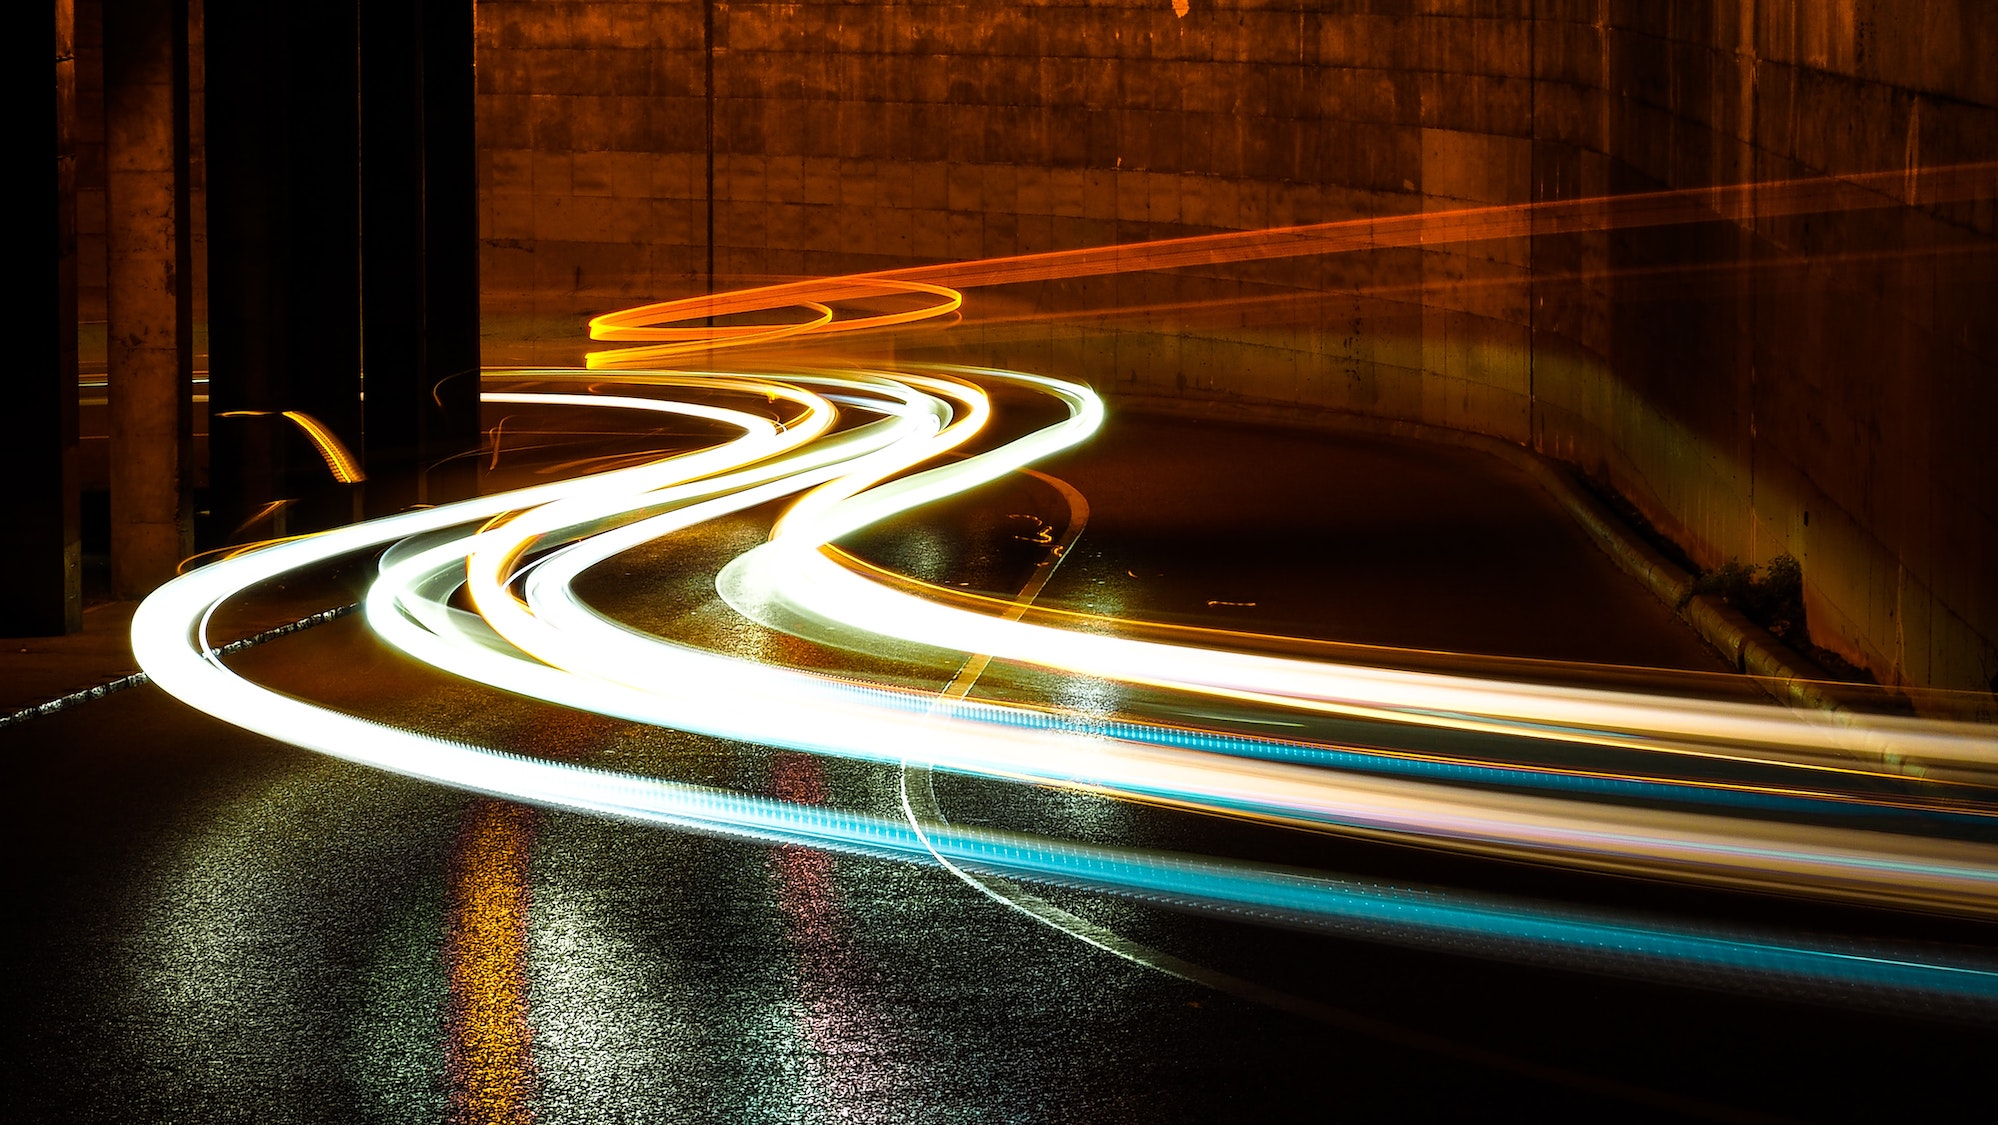 Time-lapse motion blur photo of traffic on a busy street